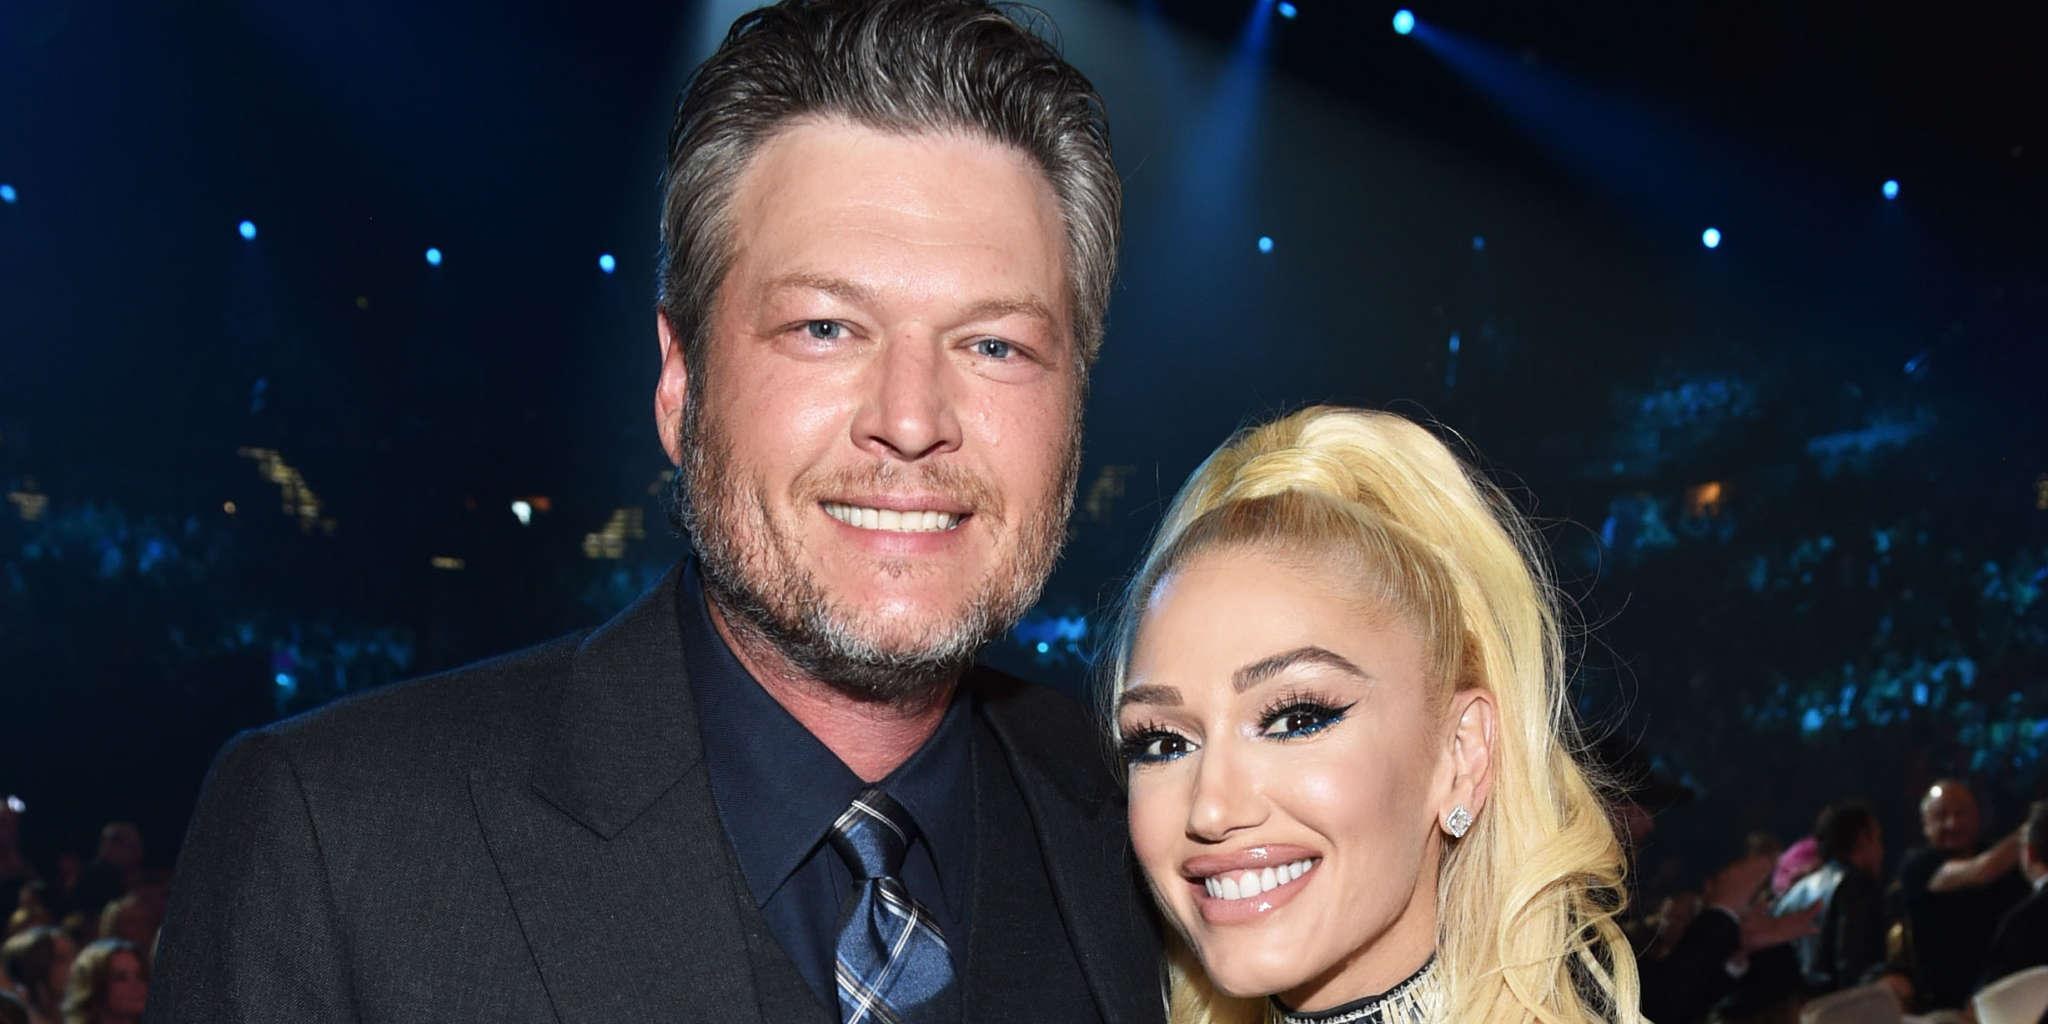 Gwen Stefani And Blake Shelton Share Intimate Kiss In New Picture